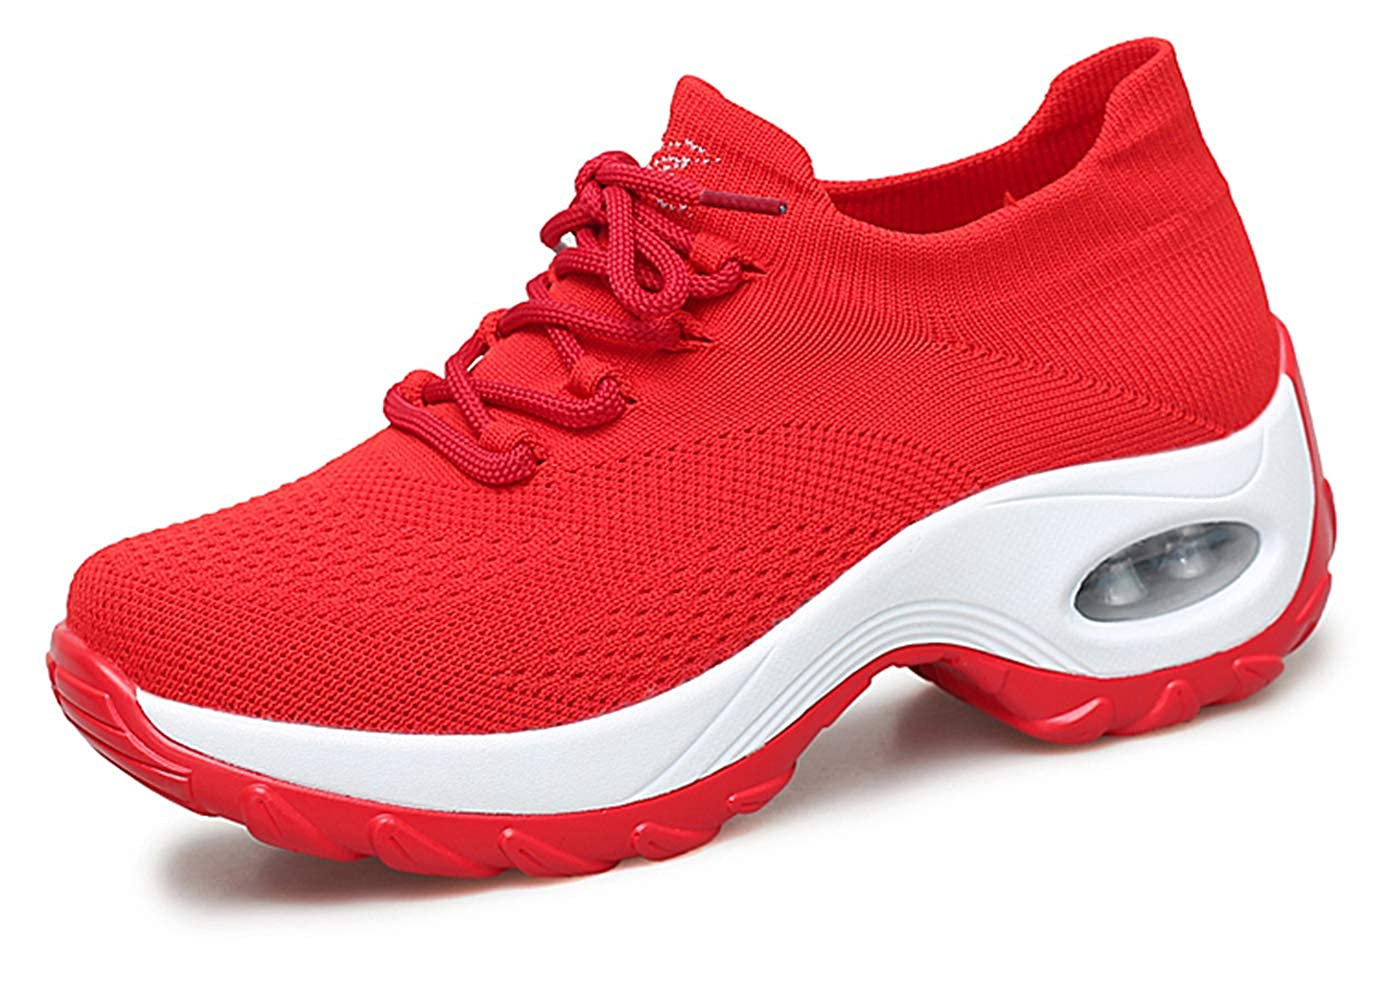 Red01 Ezkrwxn Women Athletic Walking shoes Sock Fashion Sneakers Flyknit Breathable Comfort Slip on Sports Trail Running shoes